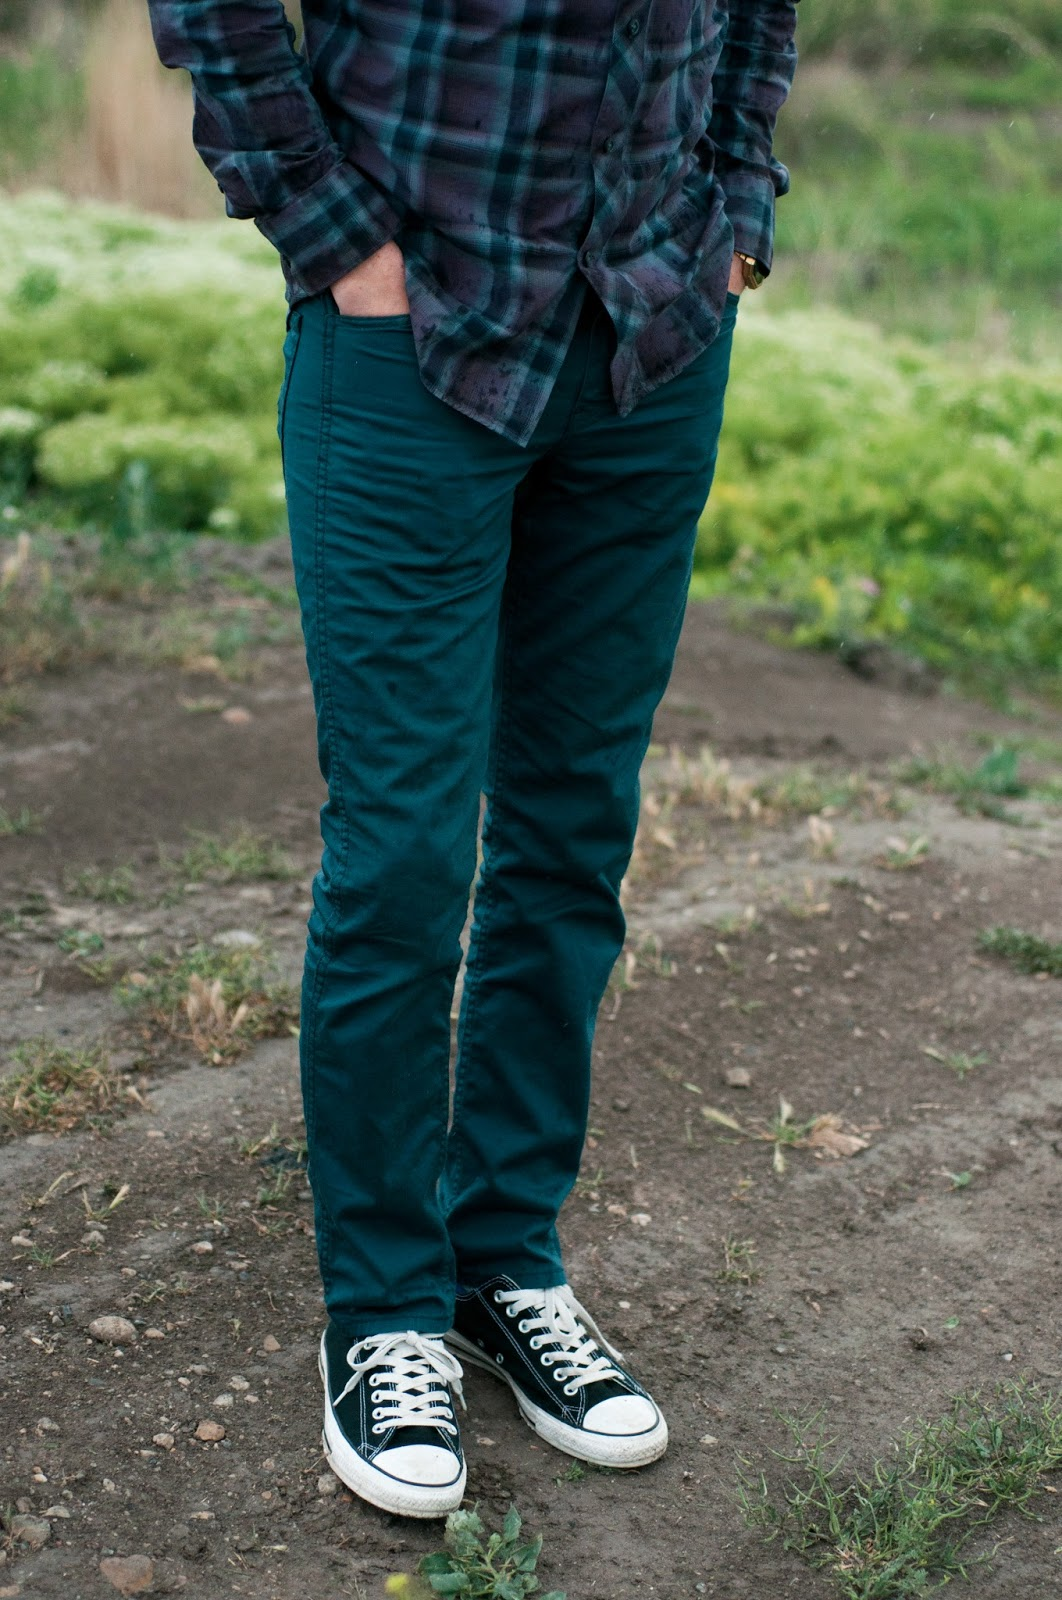 fashion blog, style blog, fashion blogger, mens style, ootd, mens ootd, mens jcrew style, jcrew style, jcrew, jcrew plaid slim fit shirt, jcrew purple plaid, levi's 510, levis jeans, converse, chucks, chuck taylors, black converse, nixon watch, nixon rerun, nixon gold watch, nixon, menswear, gold watch